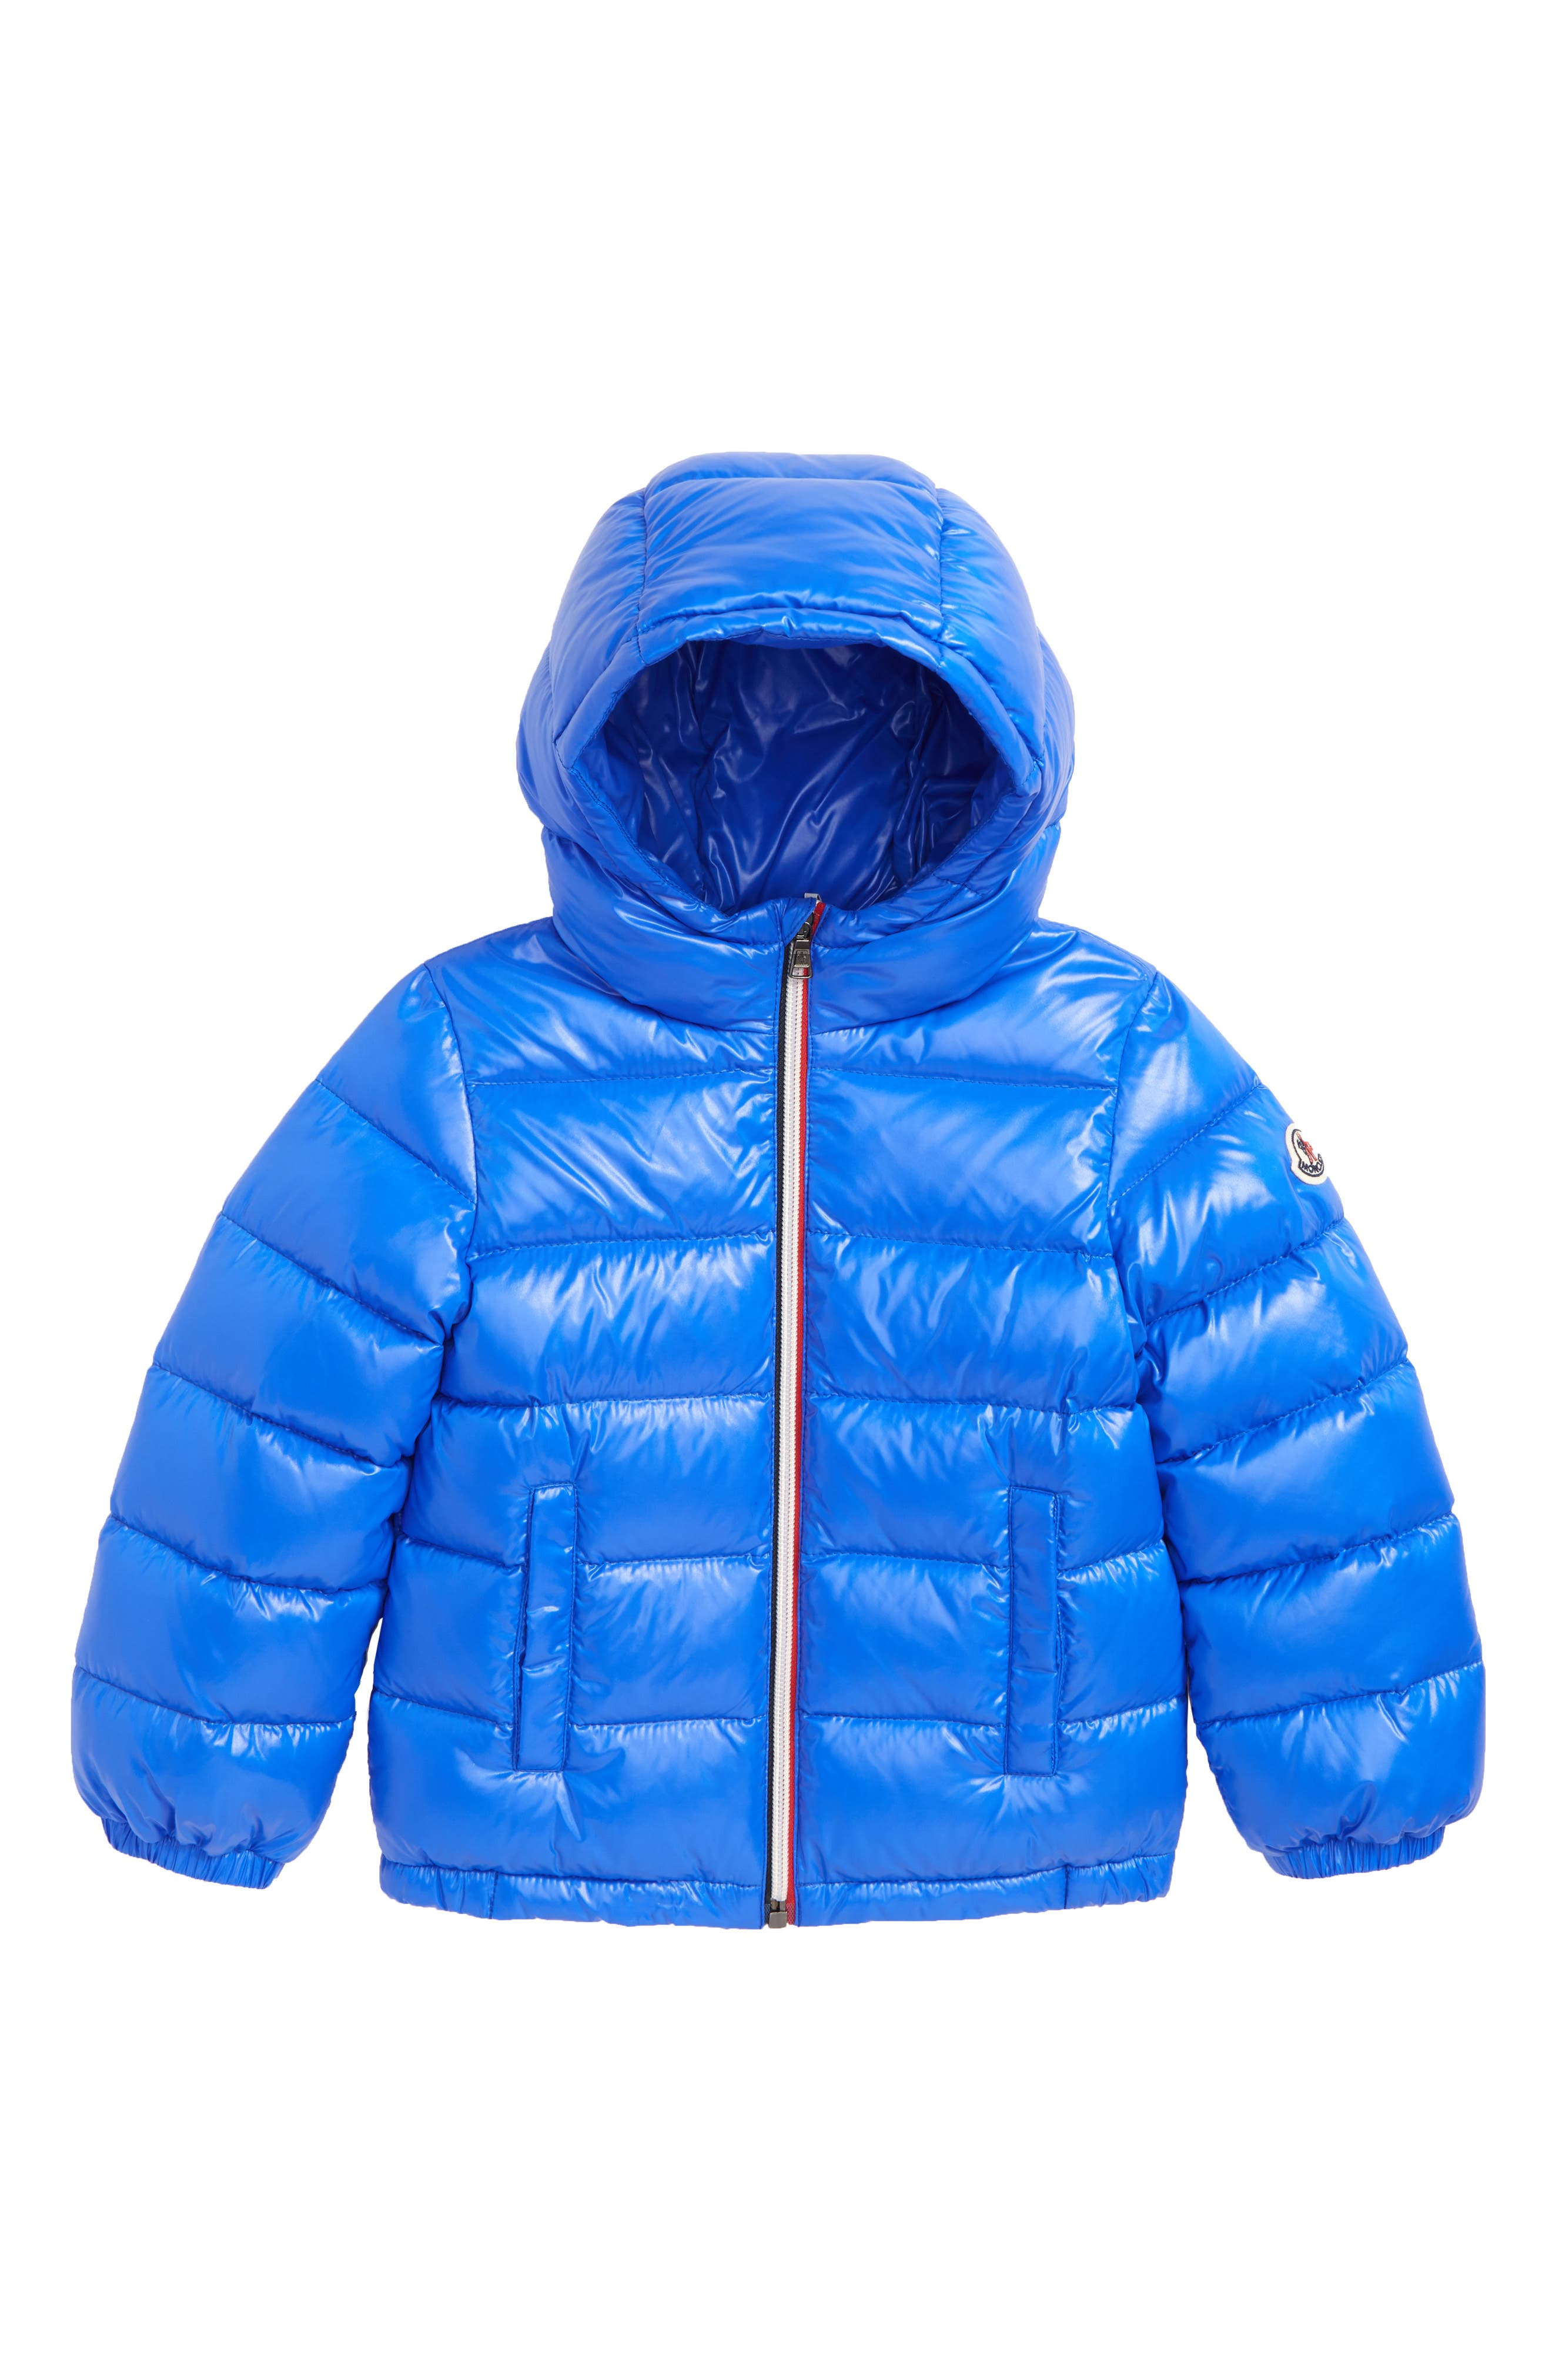 New Aubert Hooded Down Jacket,                         Main,                         color, BRIGHT BLUE